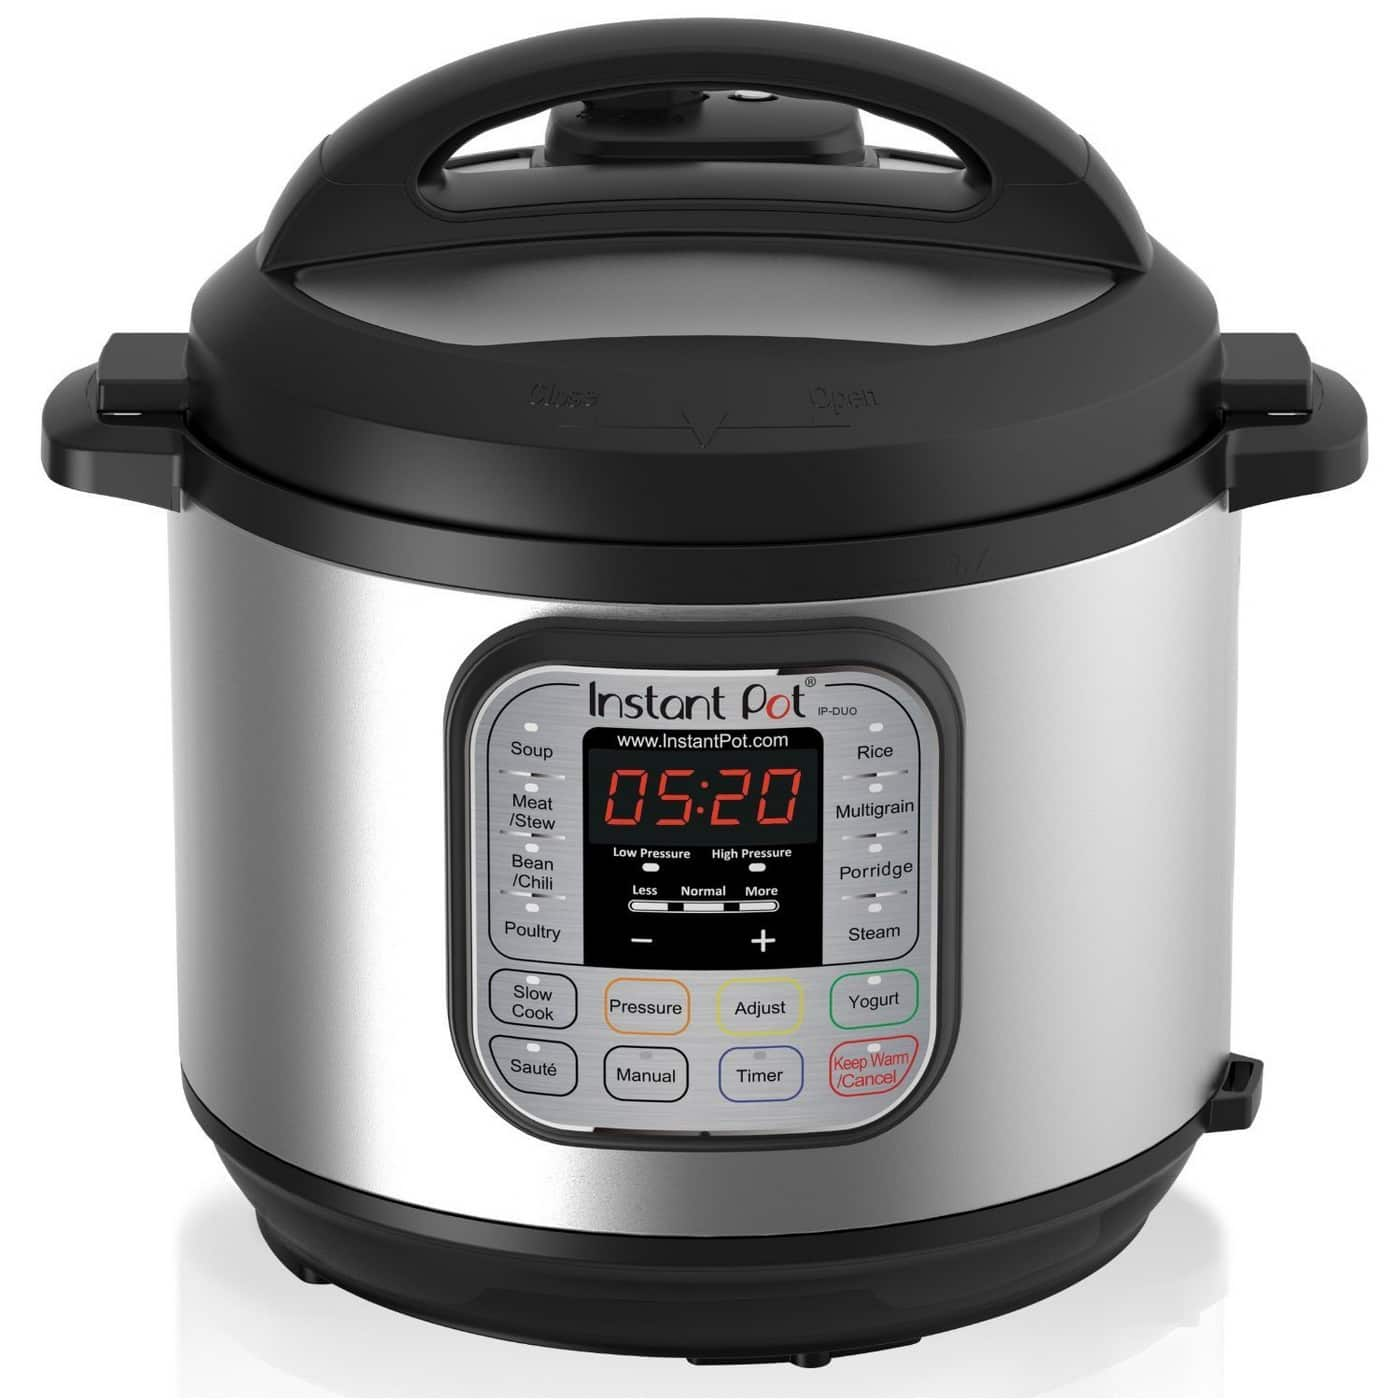 Instant Pot Duo 8qt 7-in-1 Pressure Cooker $74.96